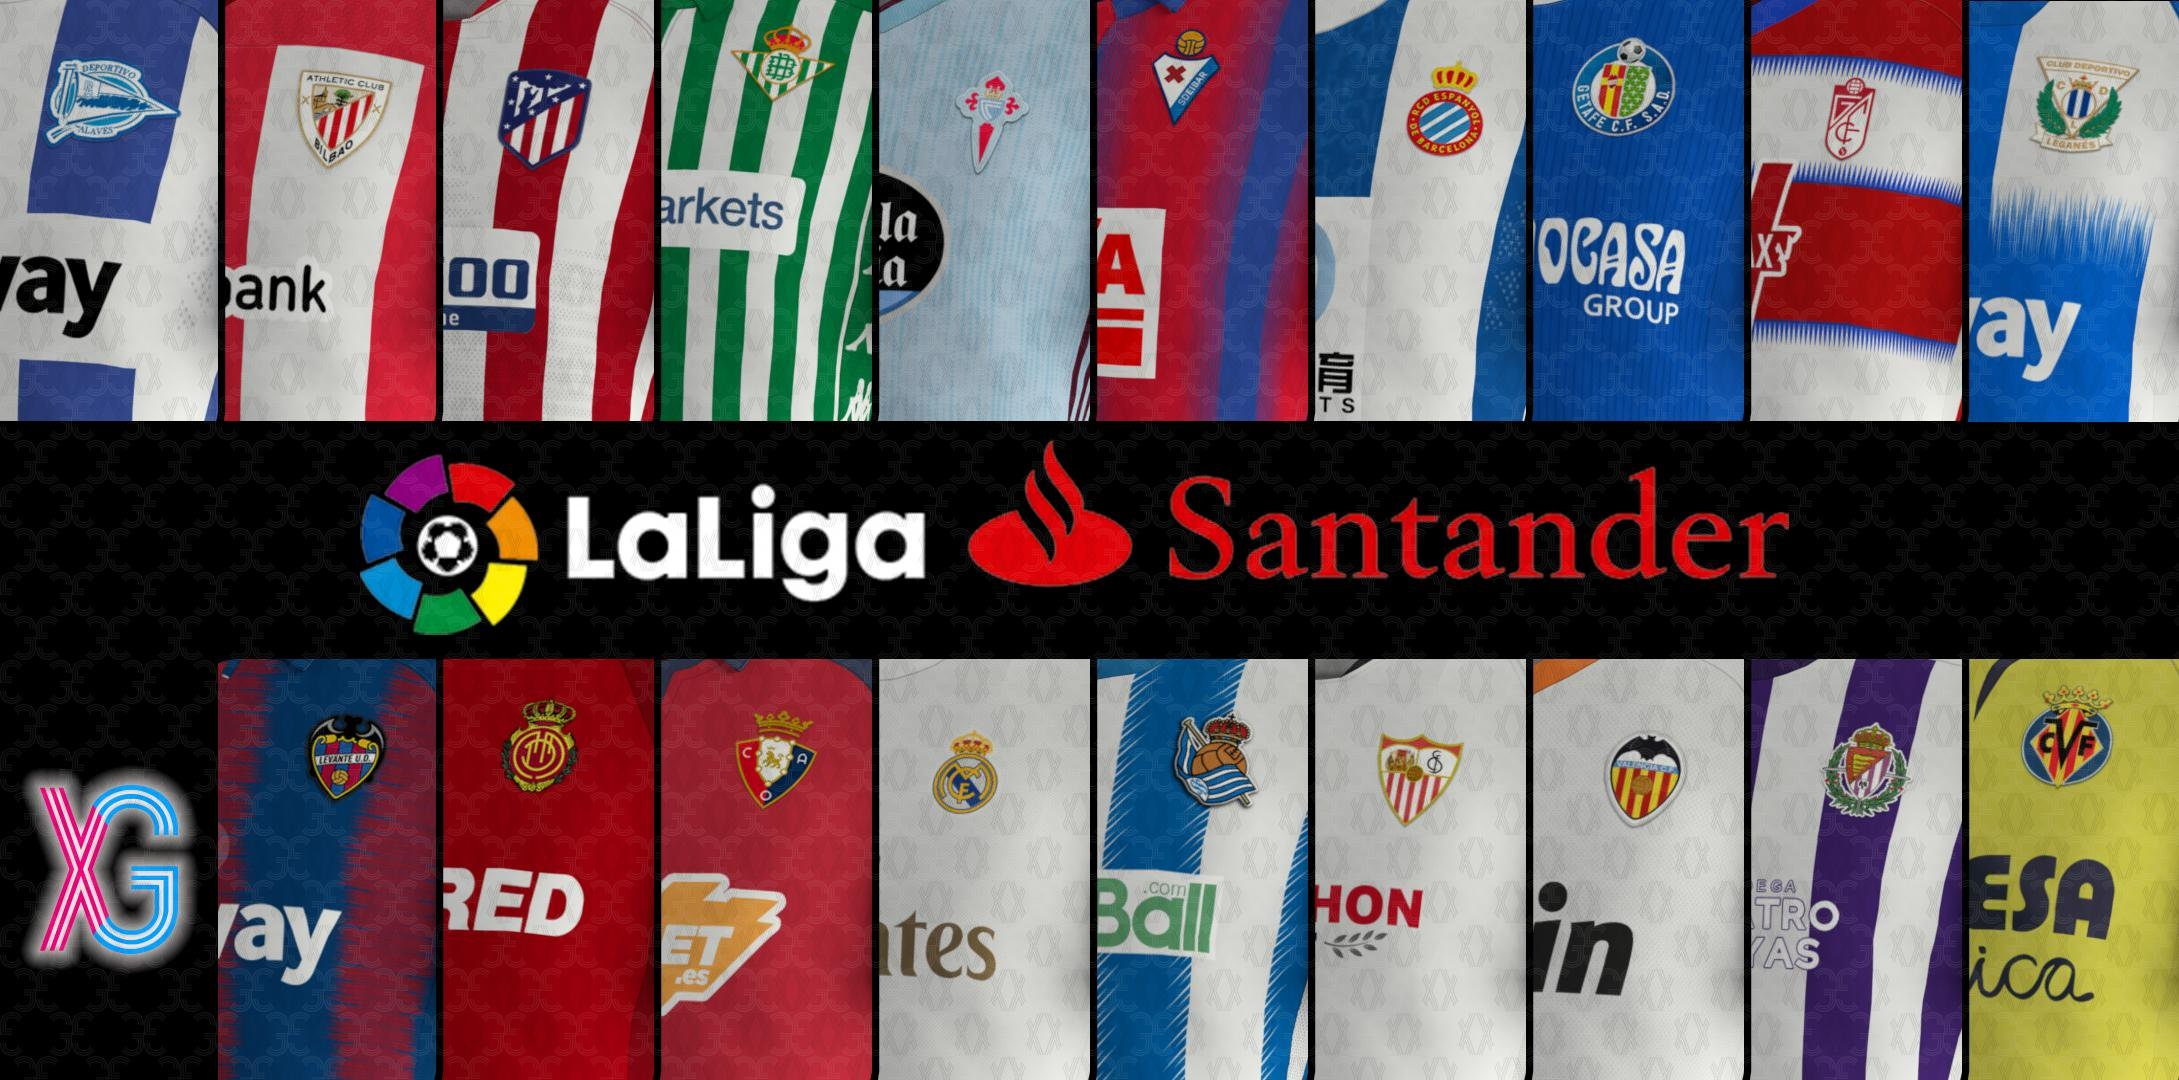 eFootball PES 2020 Kits La Liga and Press Rooms 19/20